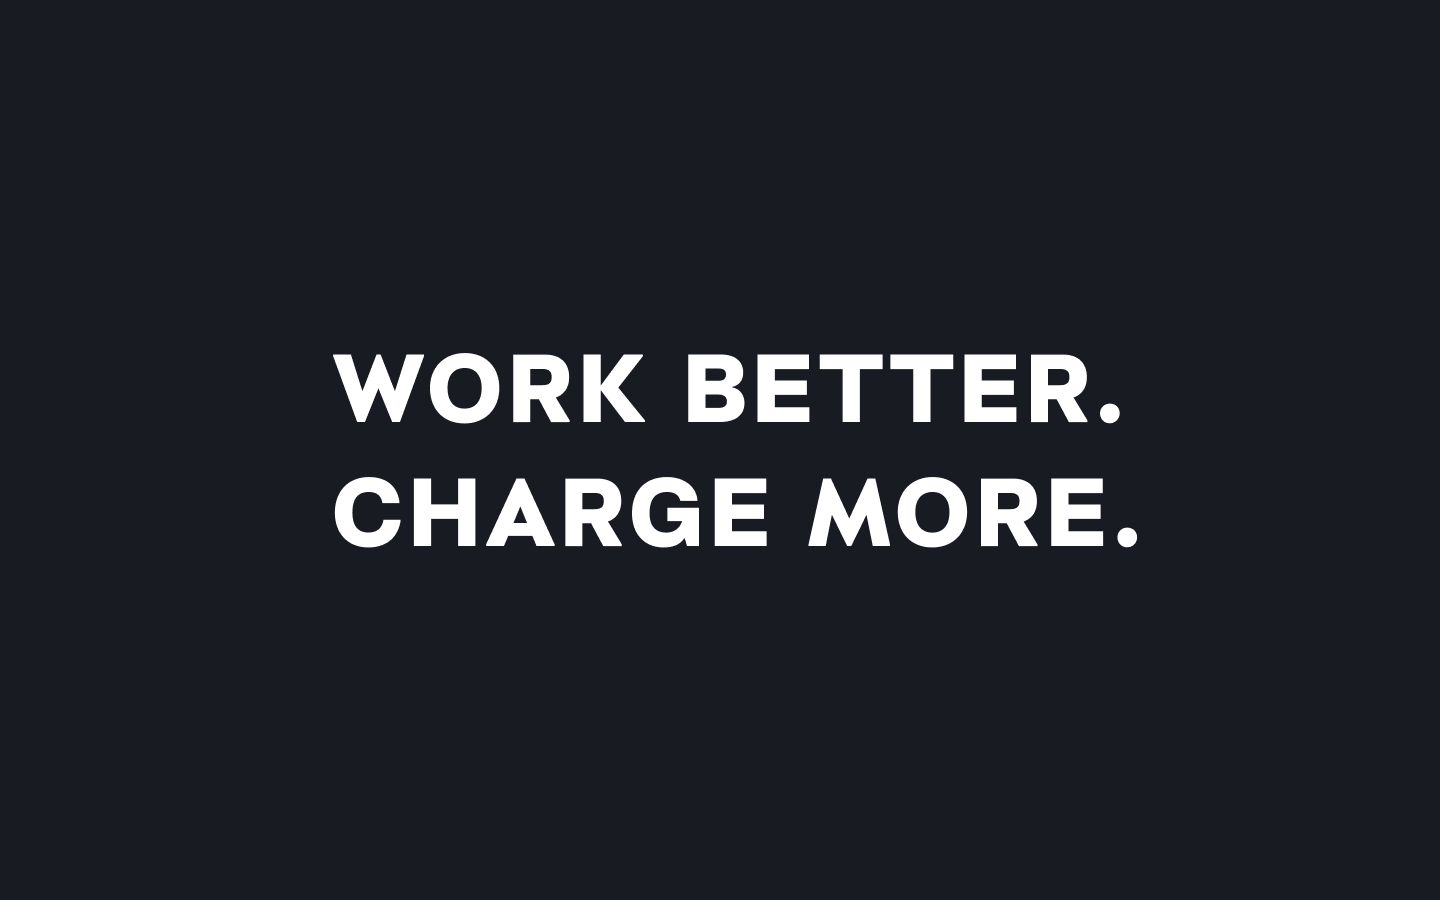 tapeta na komputer Work Better. Charge More. Macbook Pro